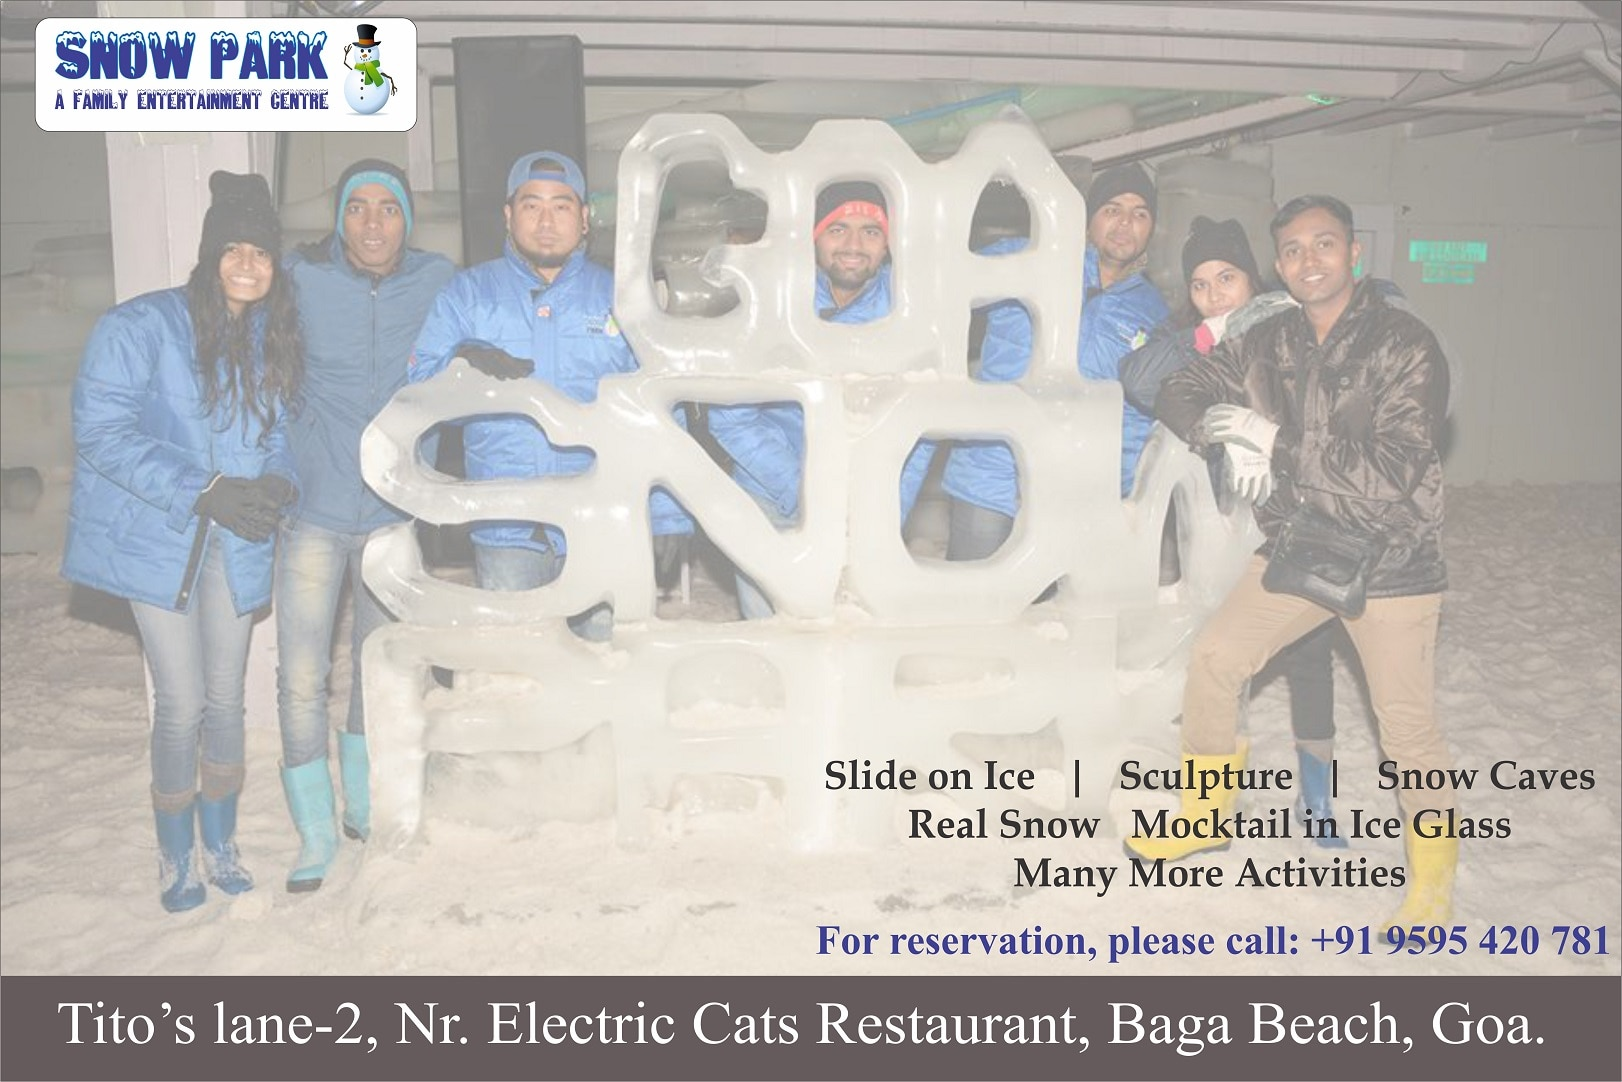 #Slideonice #Realsnow #Realfun #Snowparkgoa #goa #beach #Sun #Sand #Sea #Mocktain #Iceglass #Sculpture Fun Never Goes on Strike..   Inquiry :- +91 9595 420 781